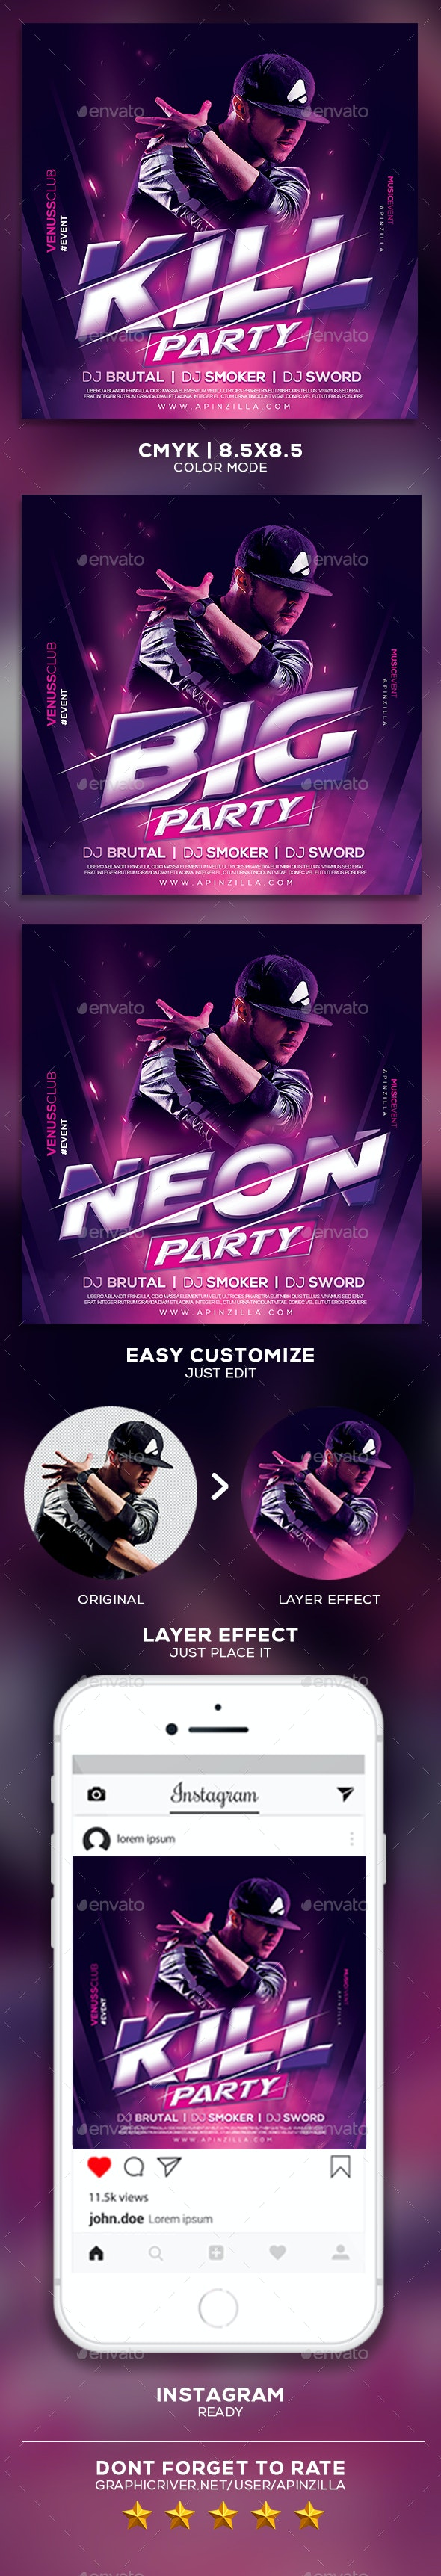 DJ Music Party Flyer - Clubs & Parties Events